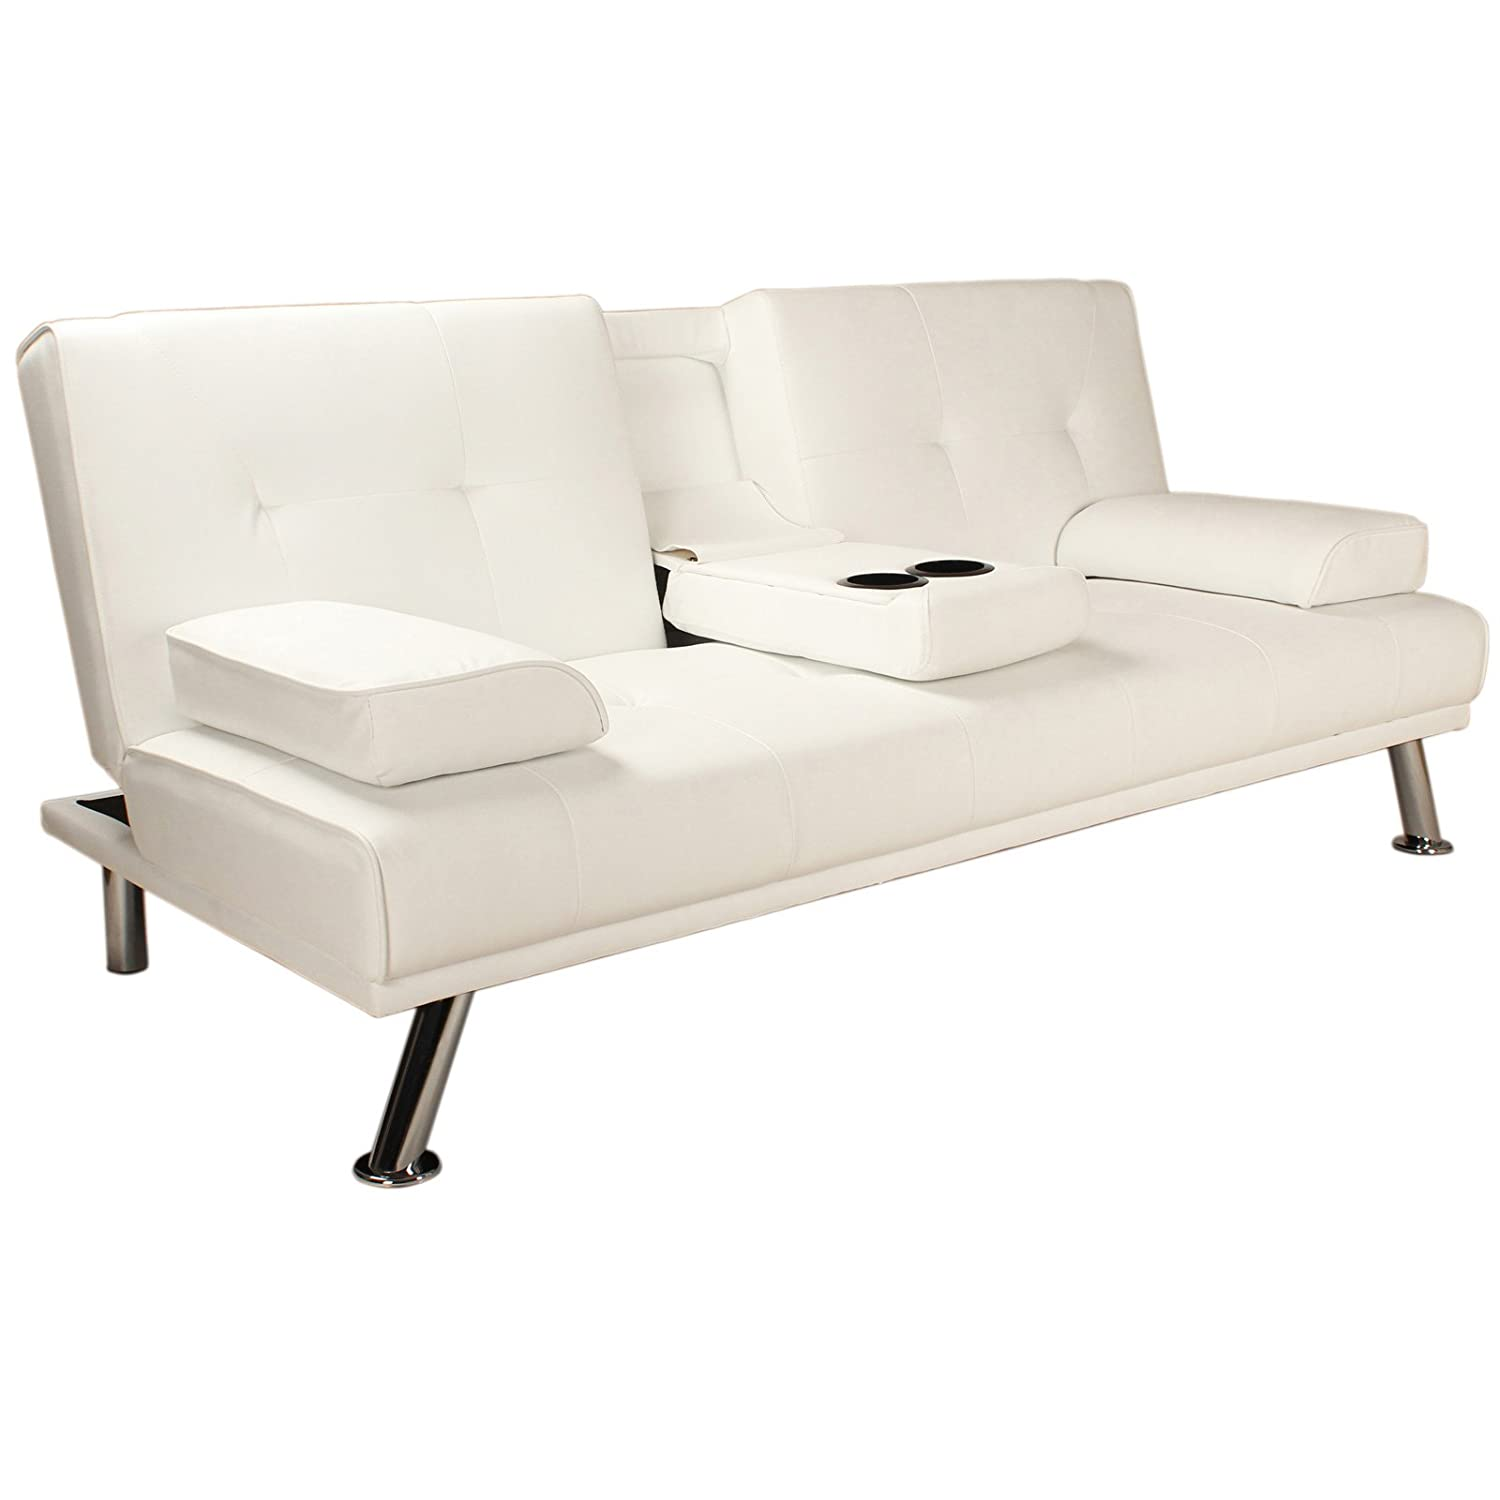 o Clack Sofa Bed with Pillows and Chrome Feet 3